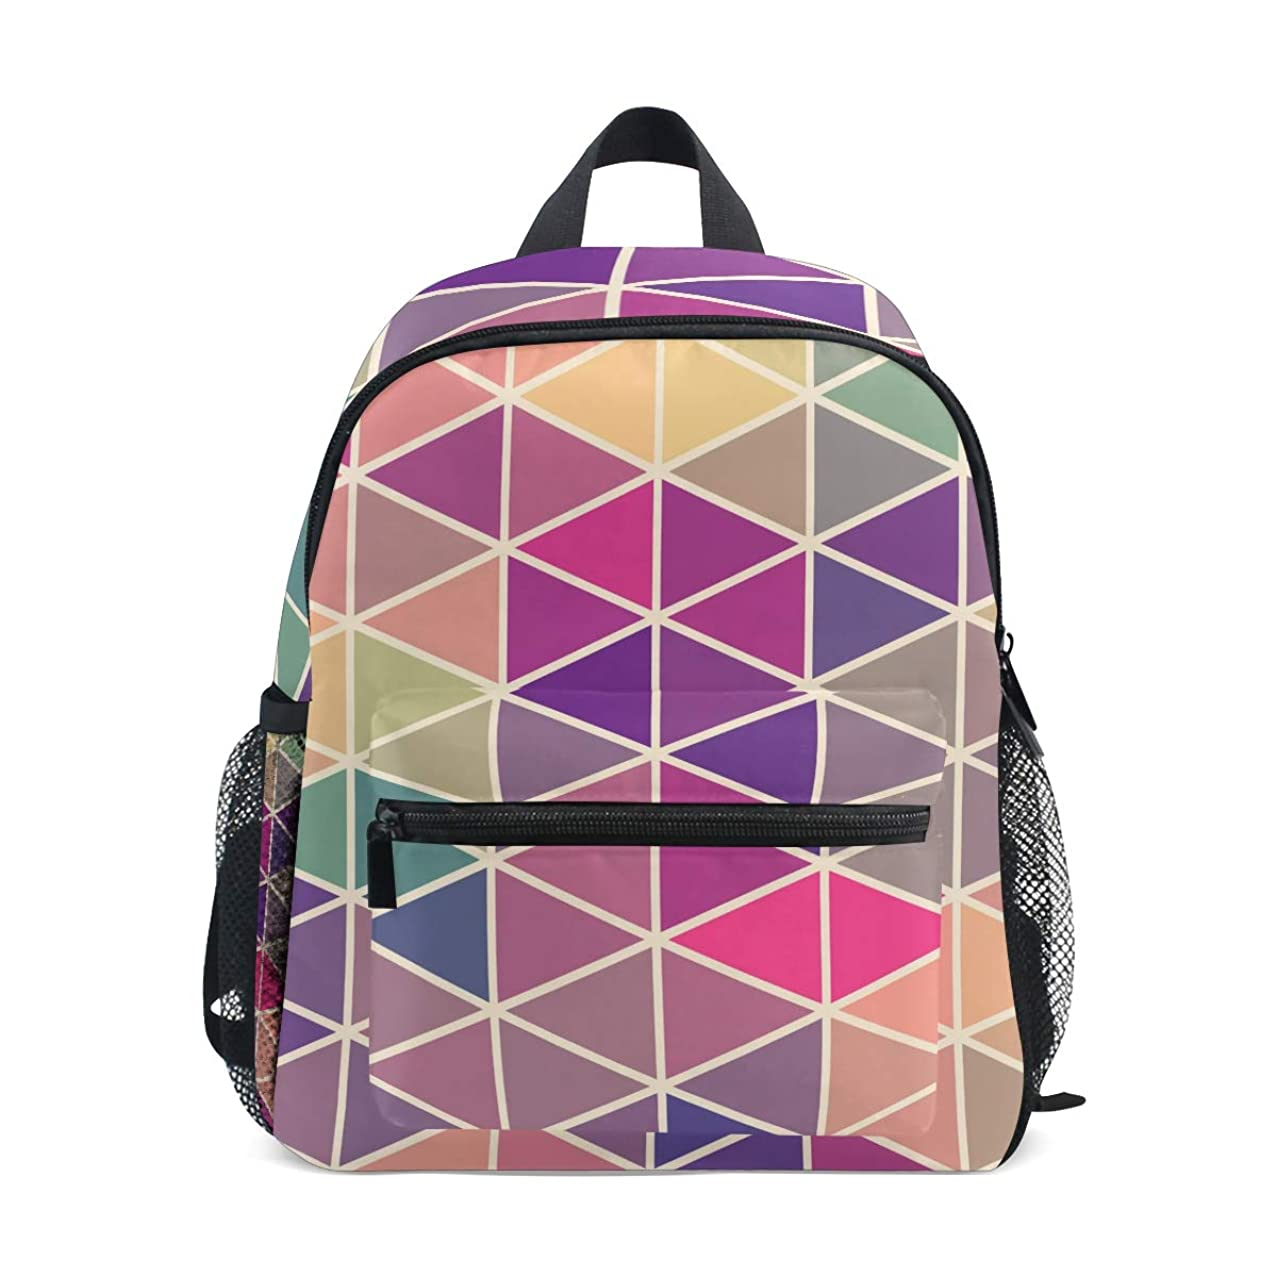 GIOVANIOR Vintage Squares And Triangles Mosaic Lightweight Travel School Backpack for Boys Girls Kids